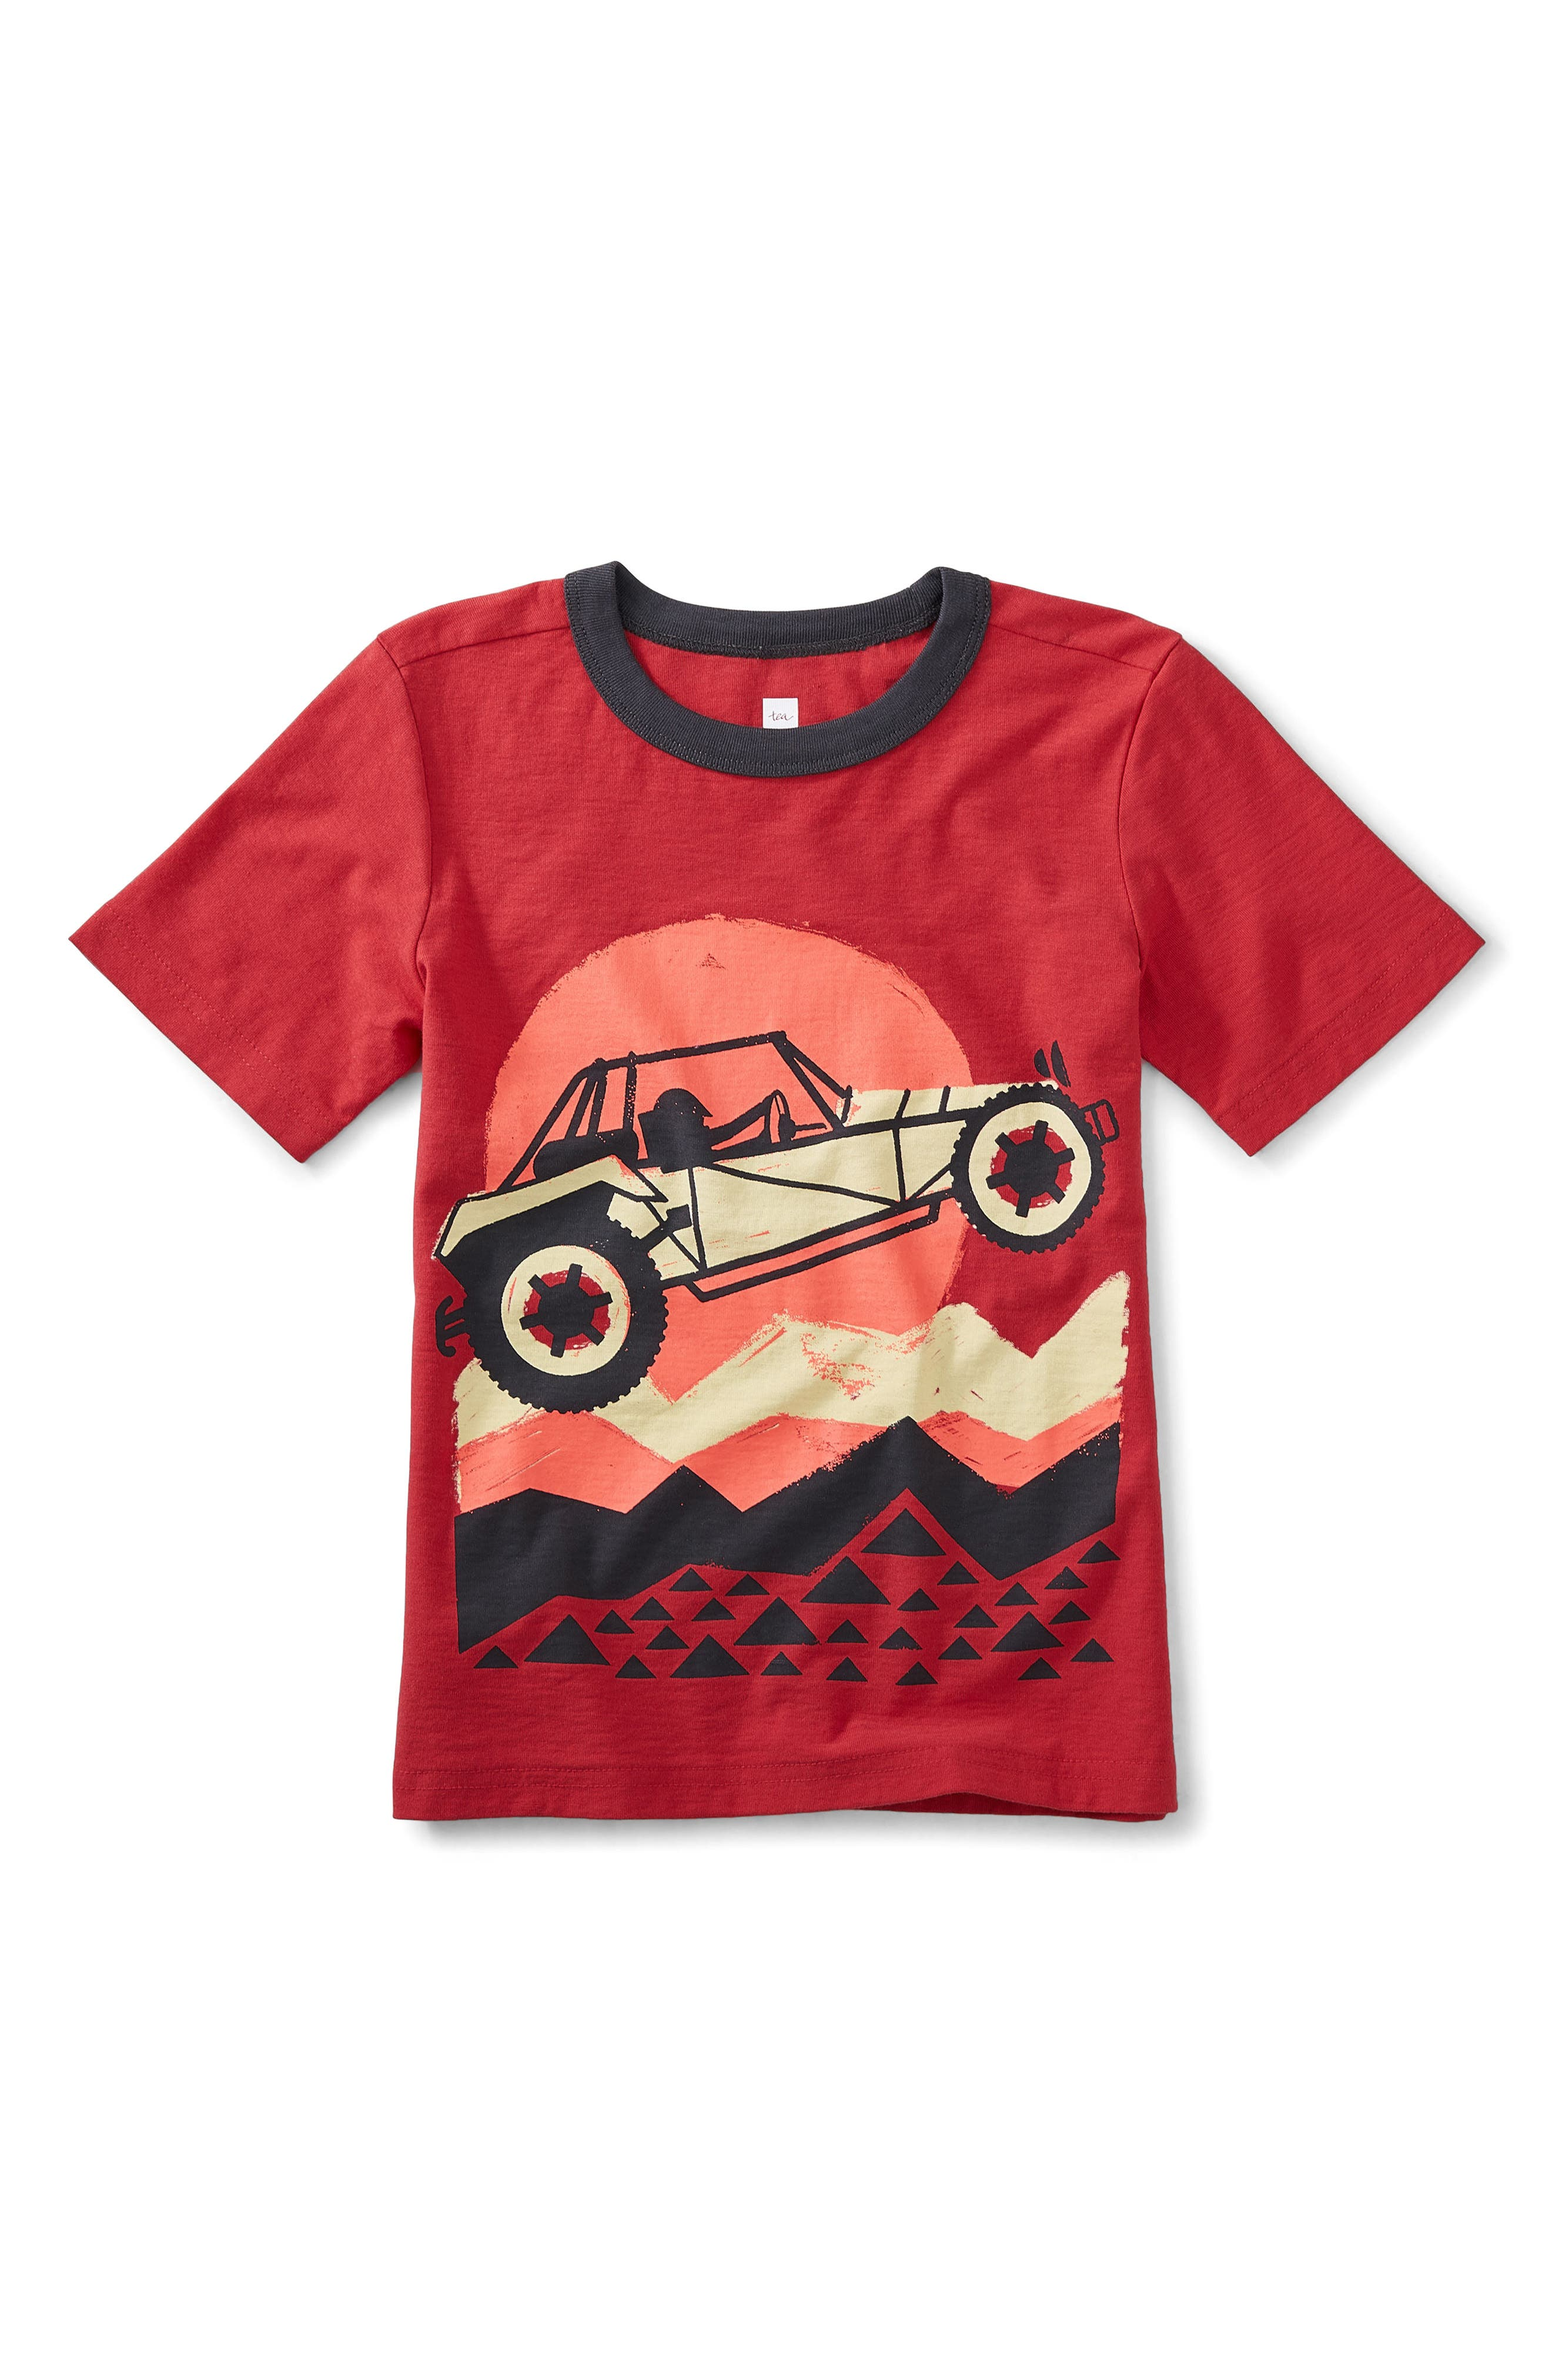 Dune Buggy Graphic T-Shirt,                             Main thumbnail 1, color,                             622